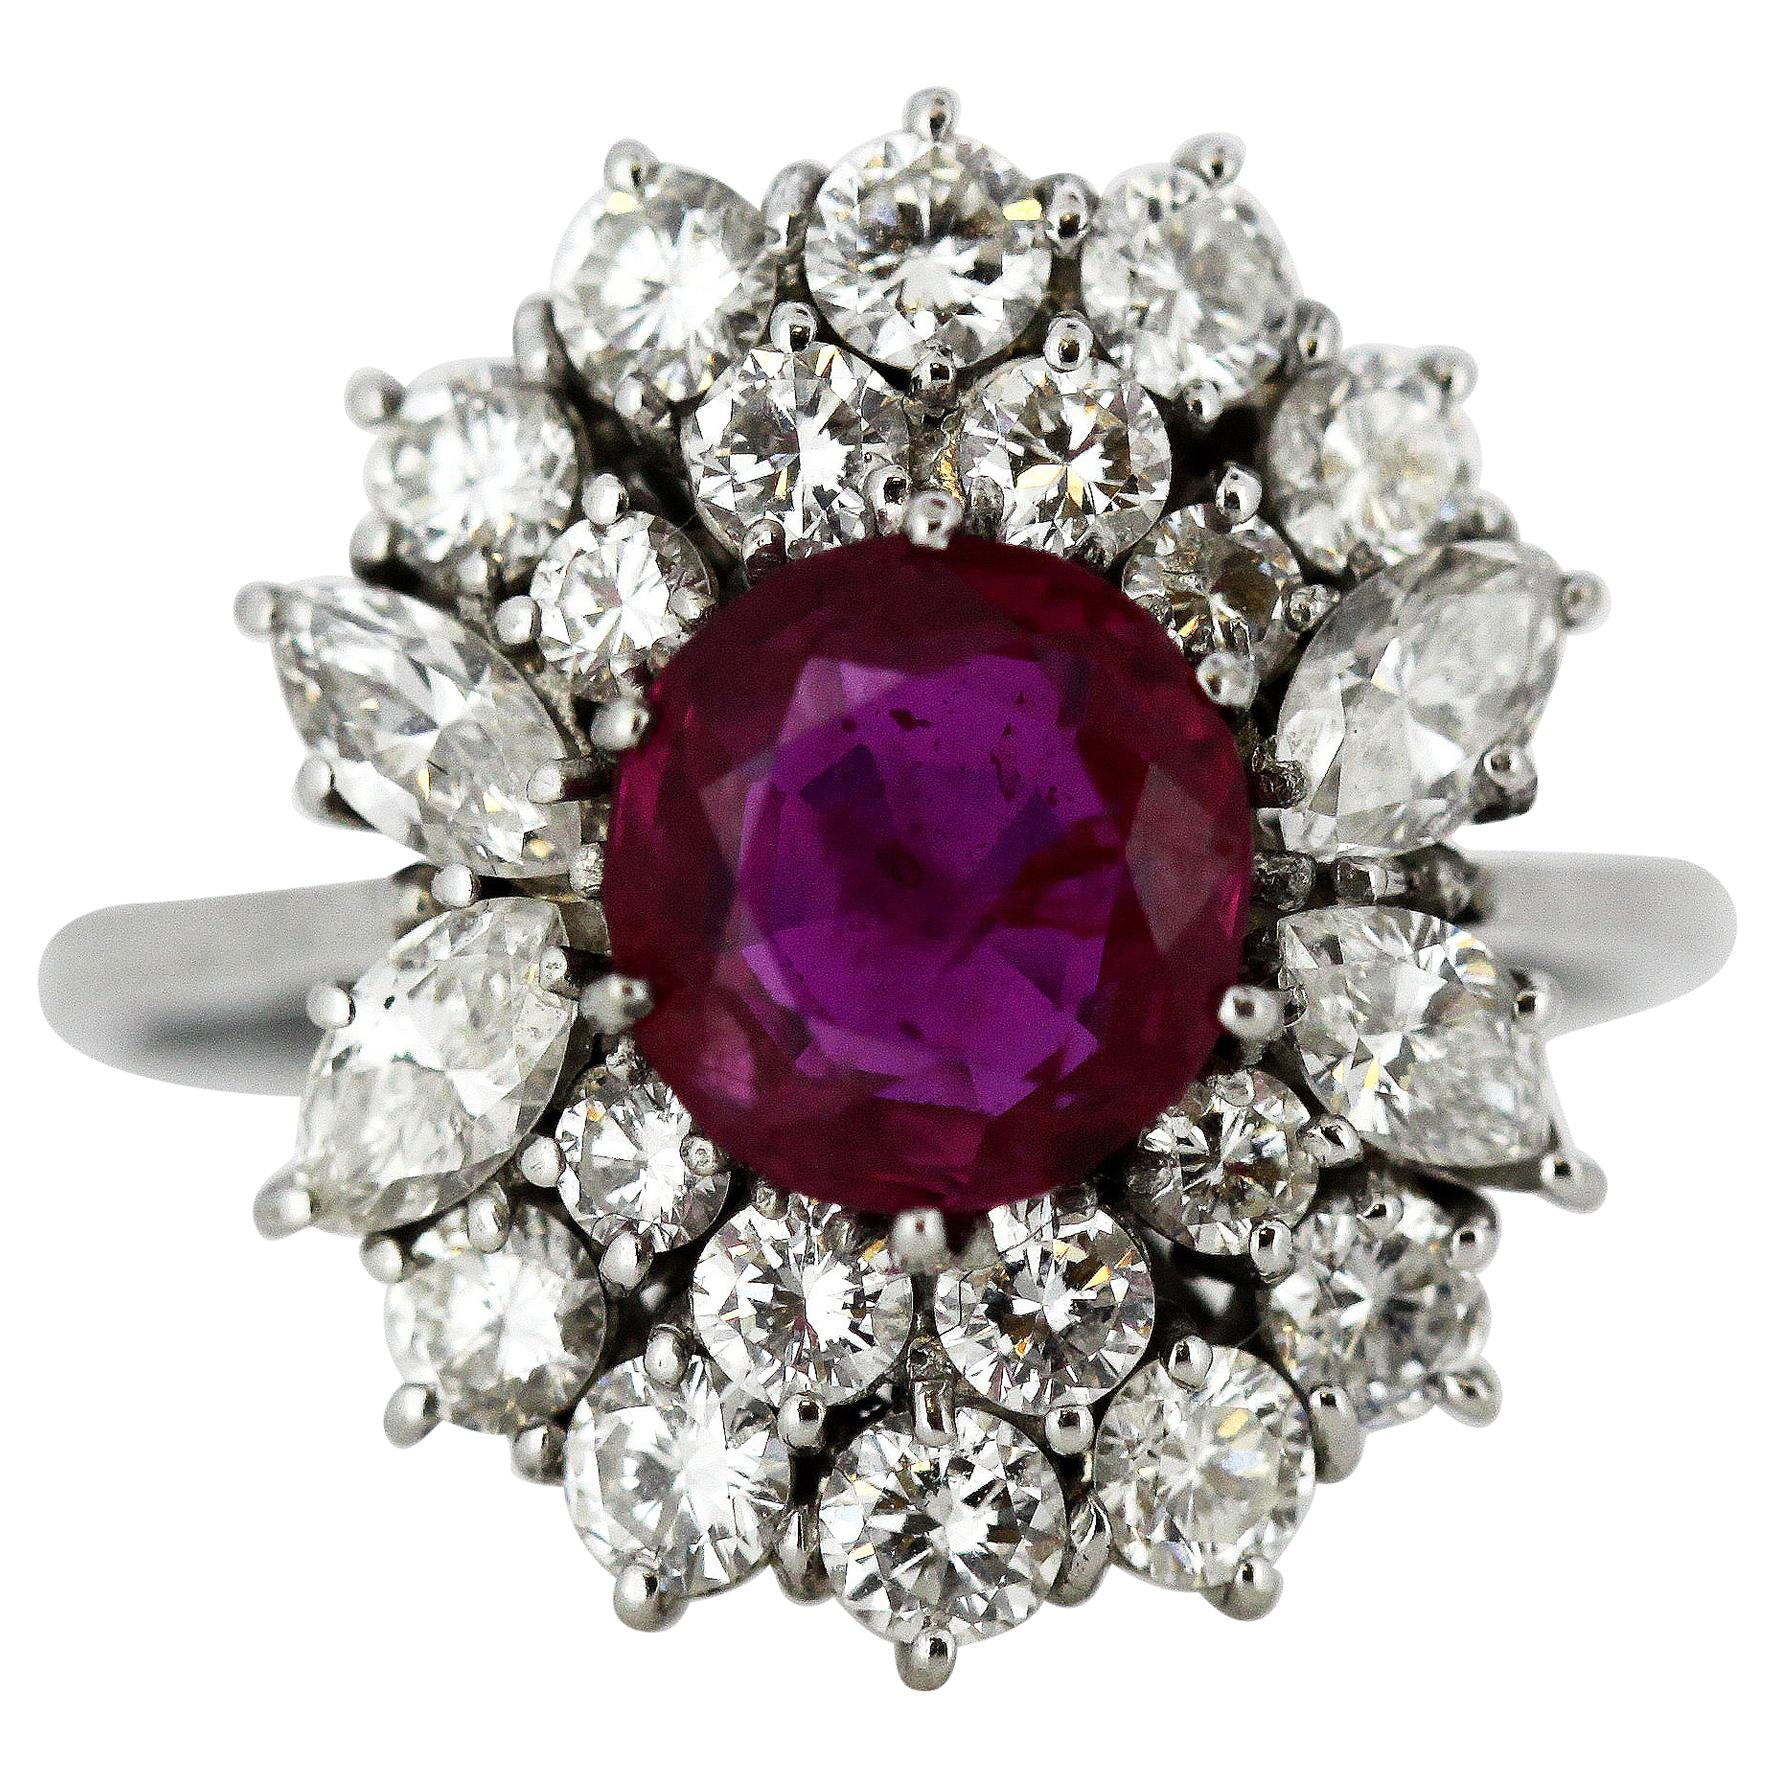 18 Karat White Gold Ladies Cluster Ring with a Central Ruby and Diamonds